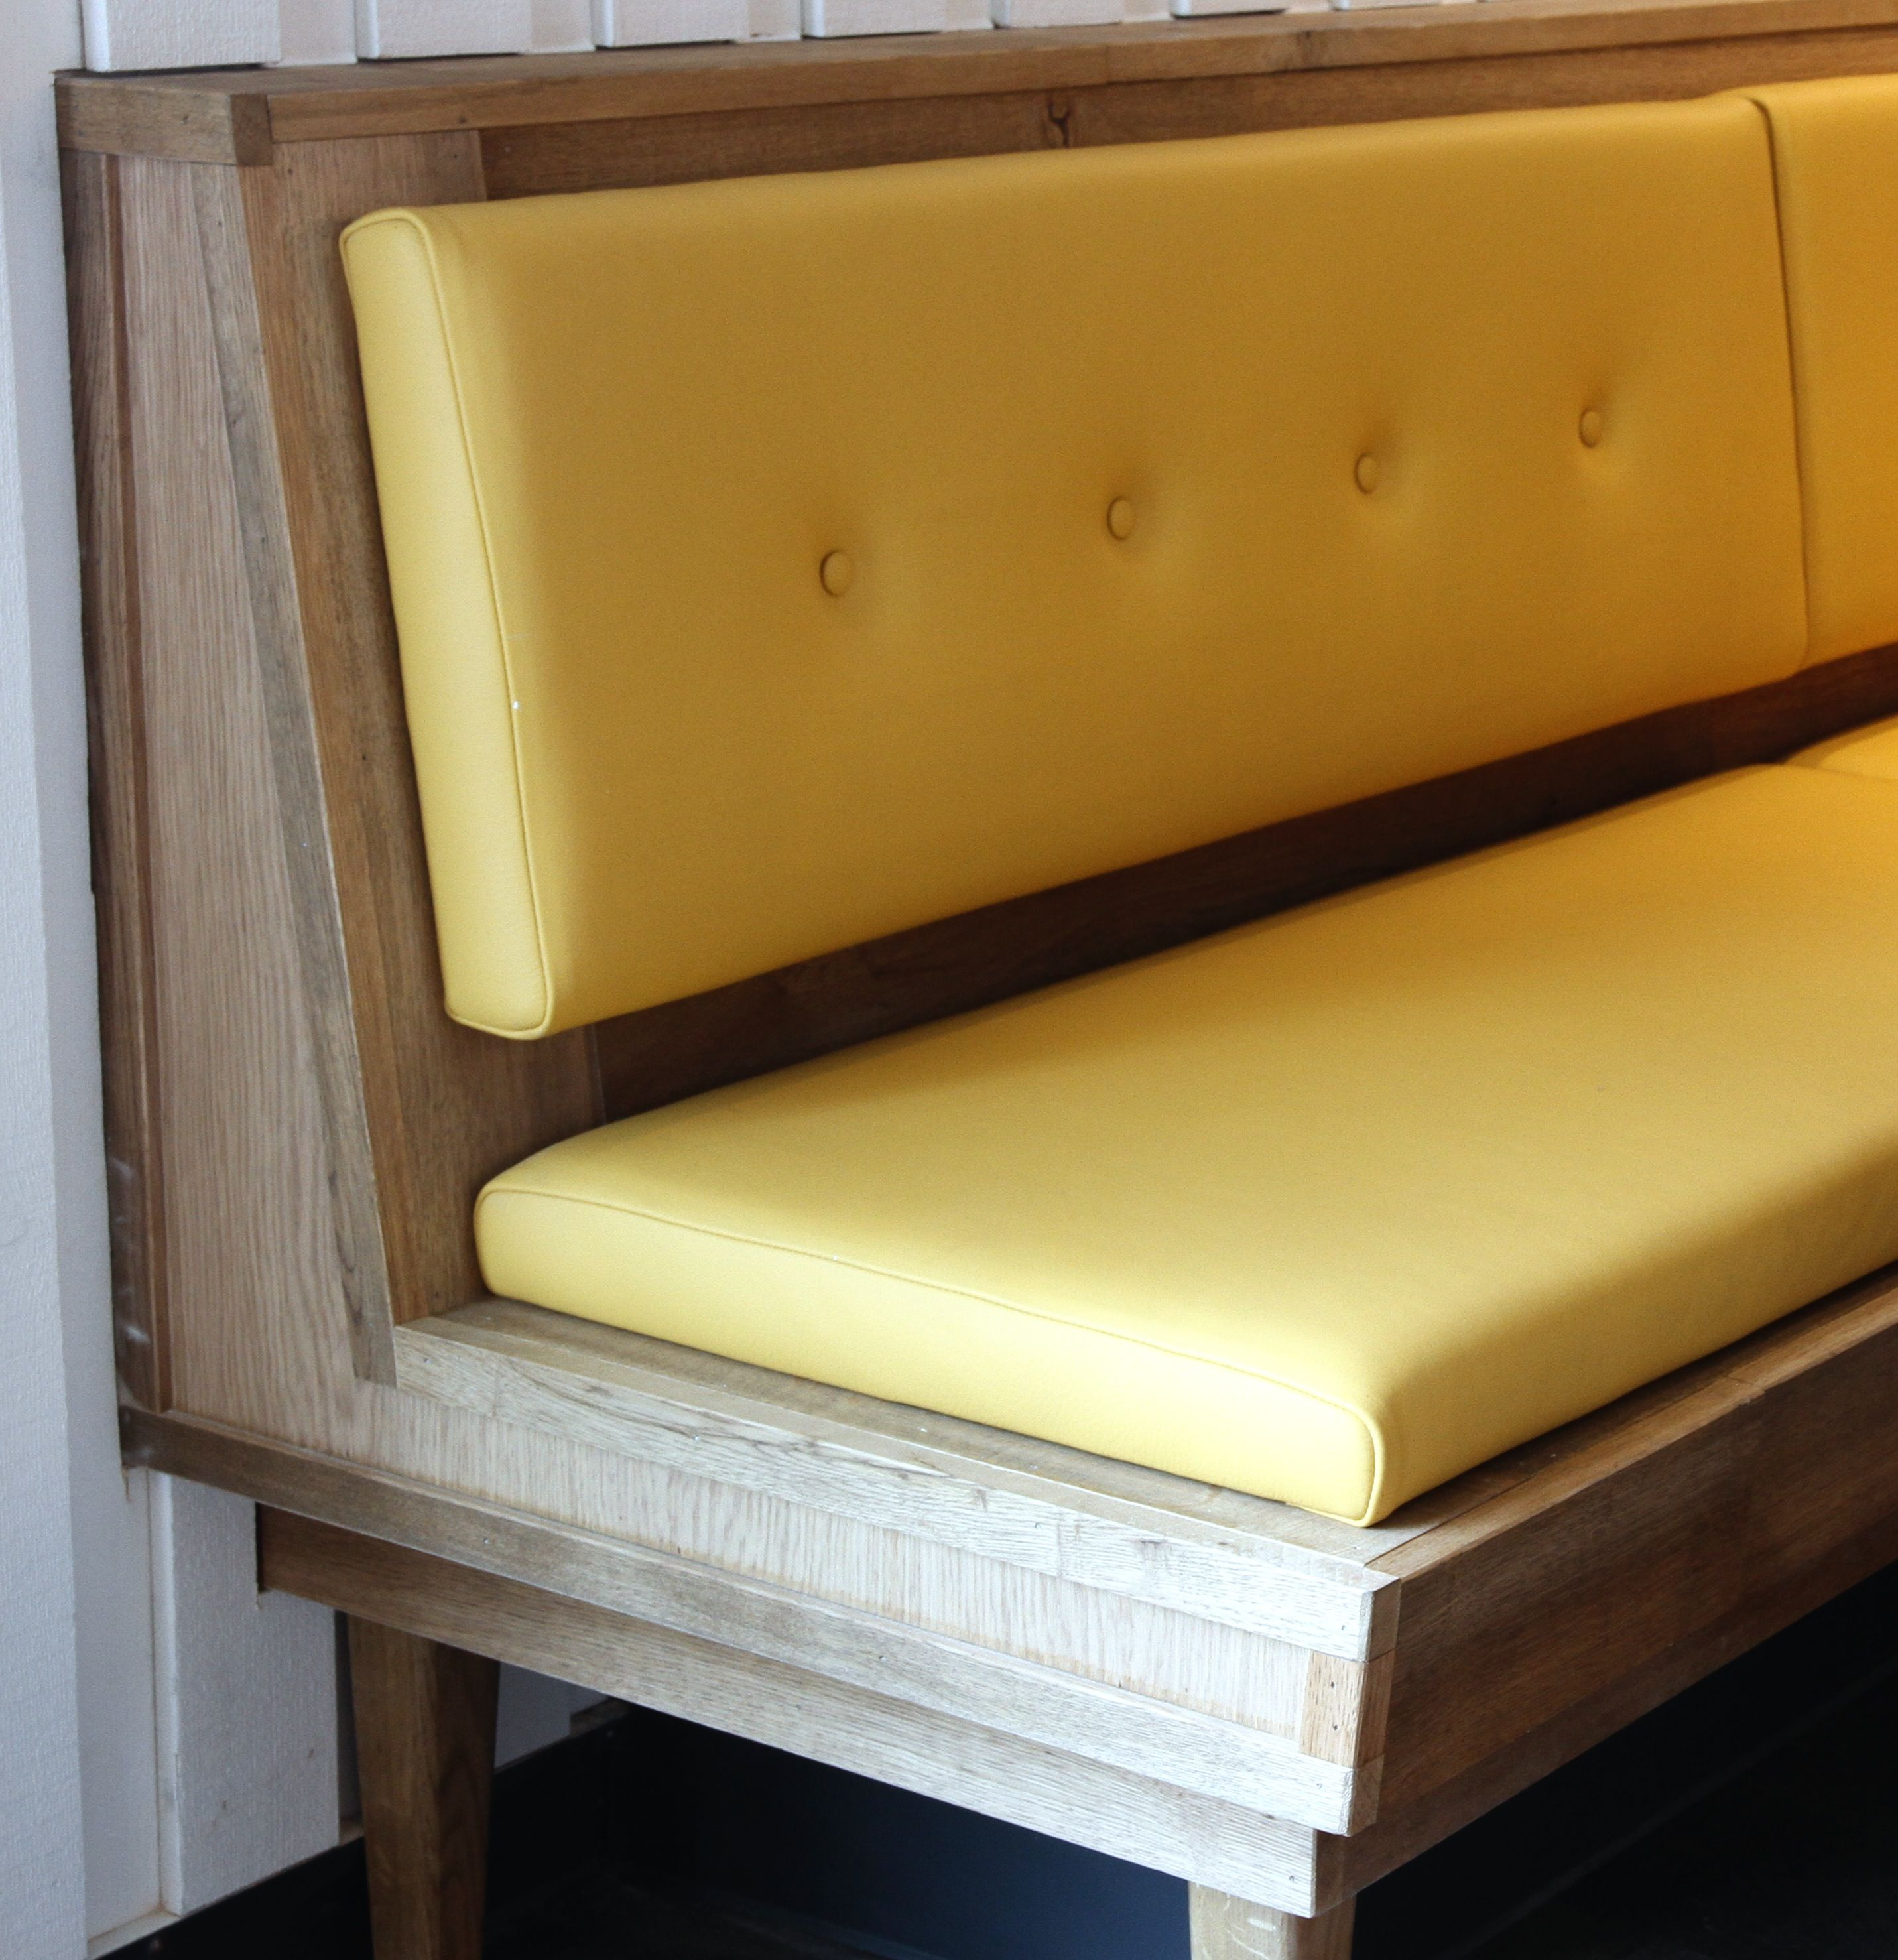 Dining Kitchen Amusing Brown Vinyl Banquette Bench With Nail Button Backseat For Banquette Seating Restaurant Banquette Seating Banquette Seating In Kitchen